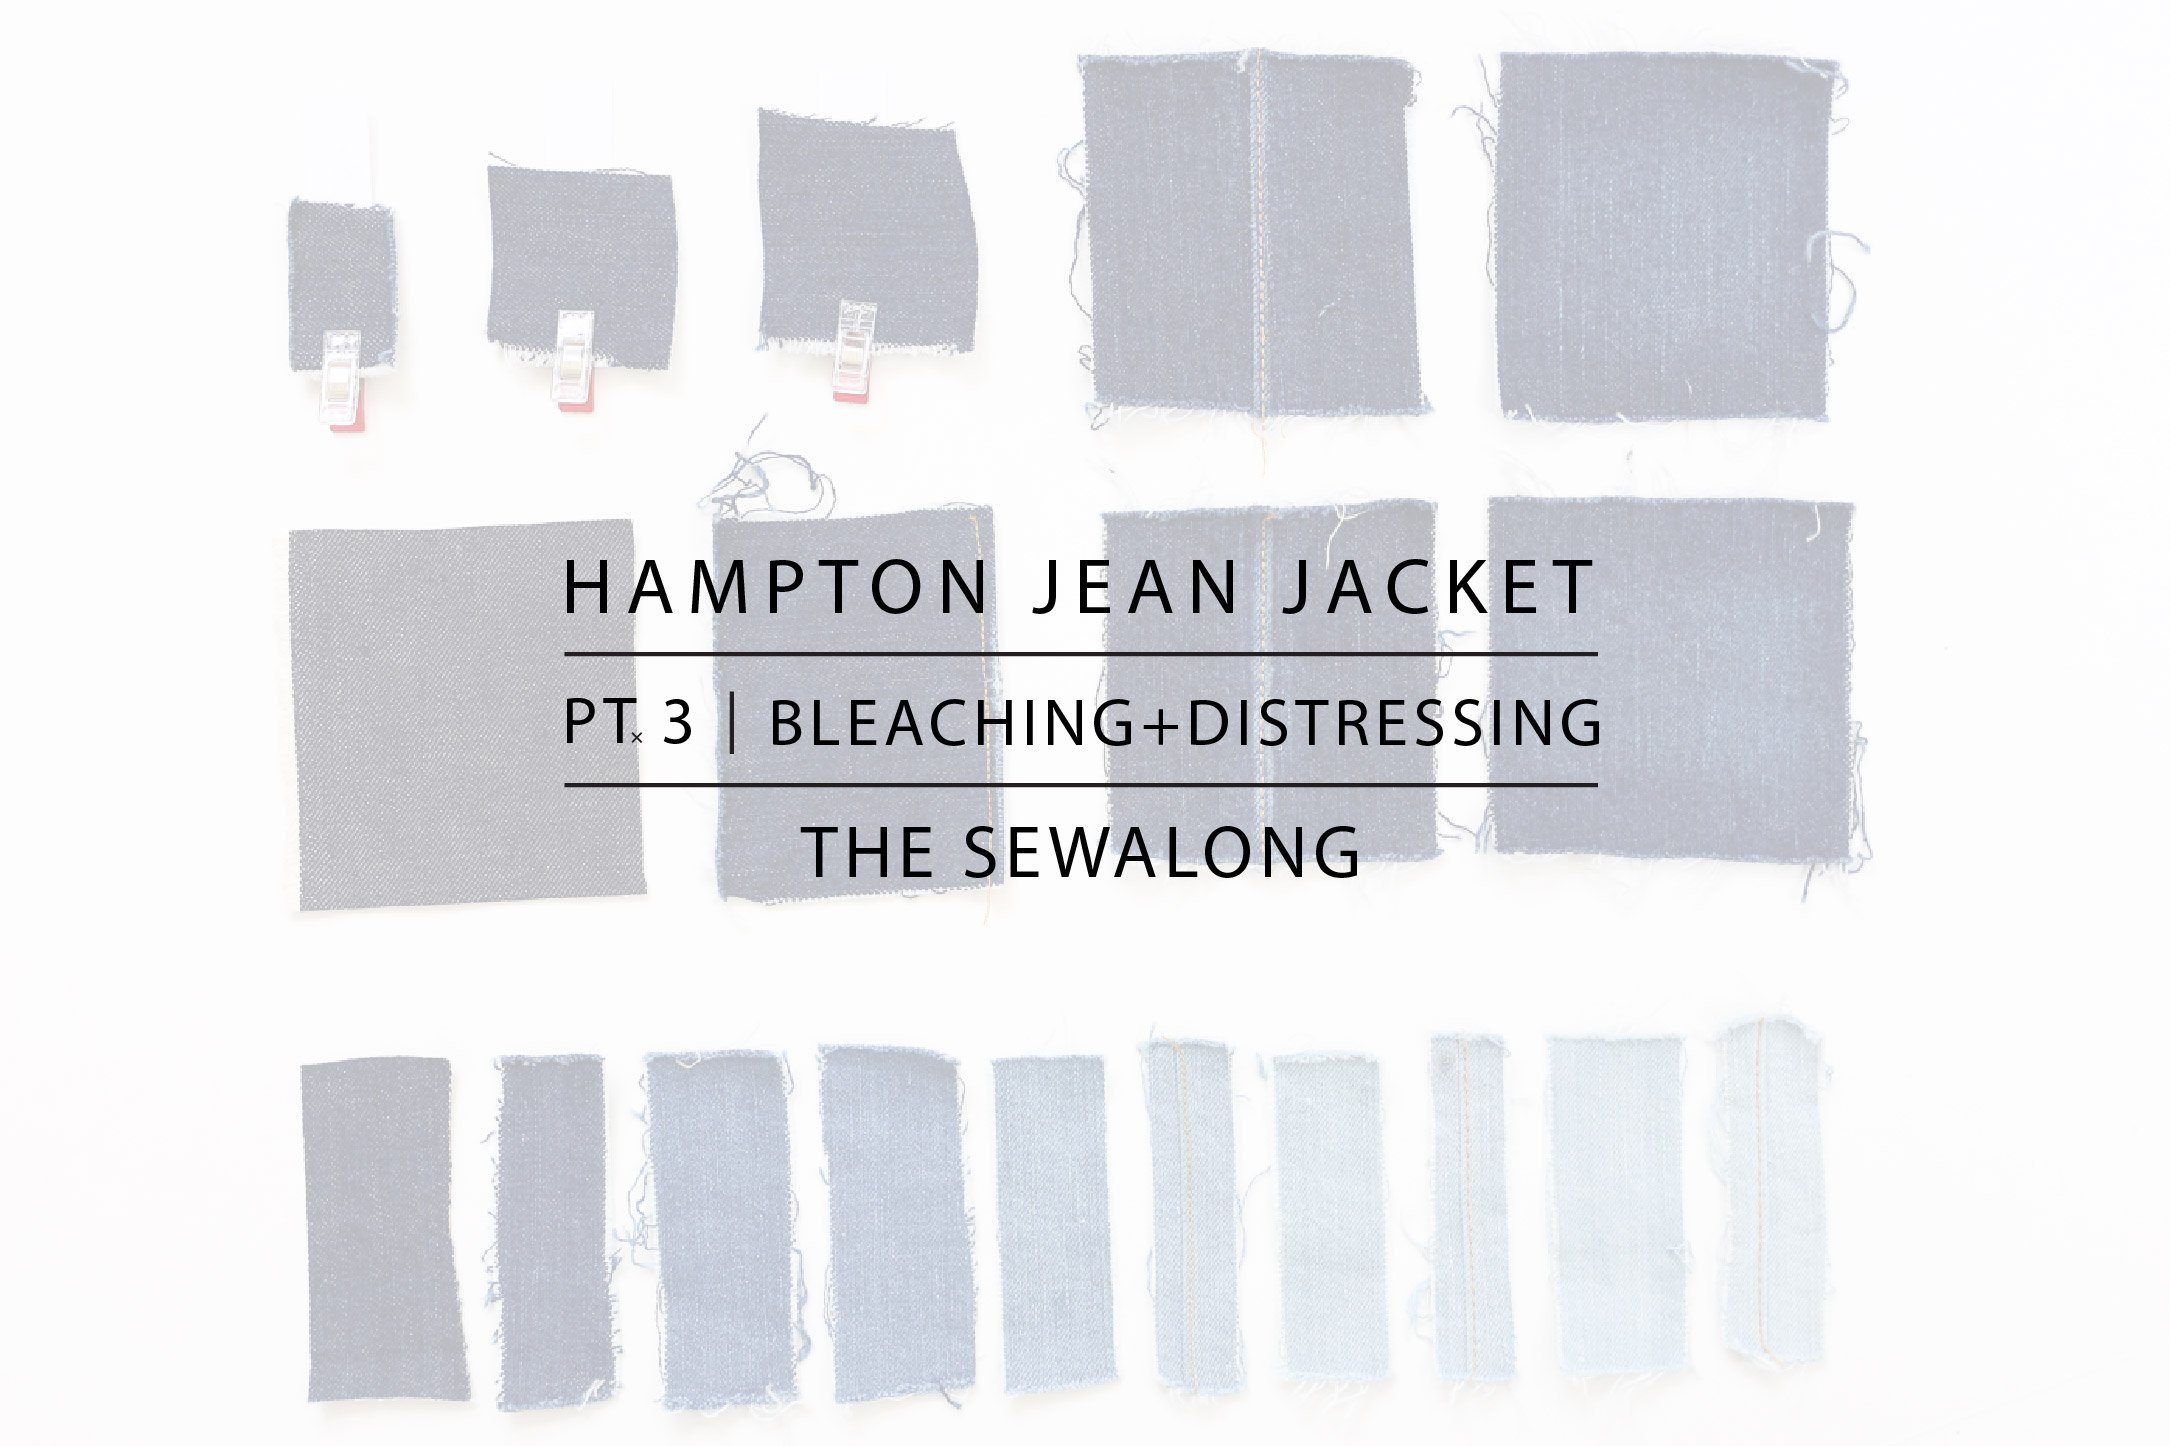 Hampton Jean Jacket Sewalong Pt. 3